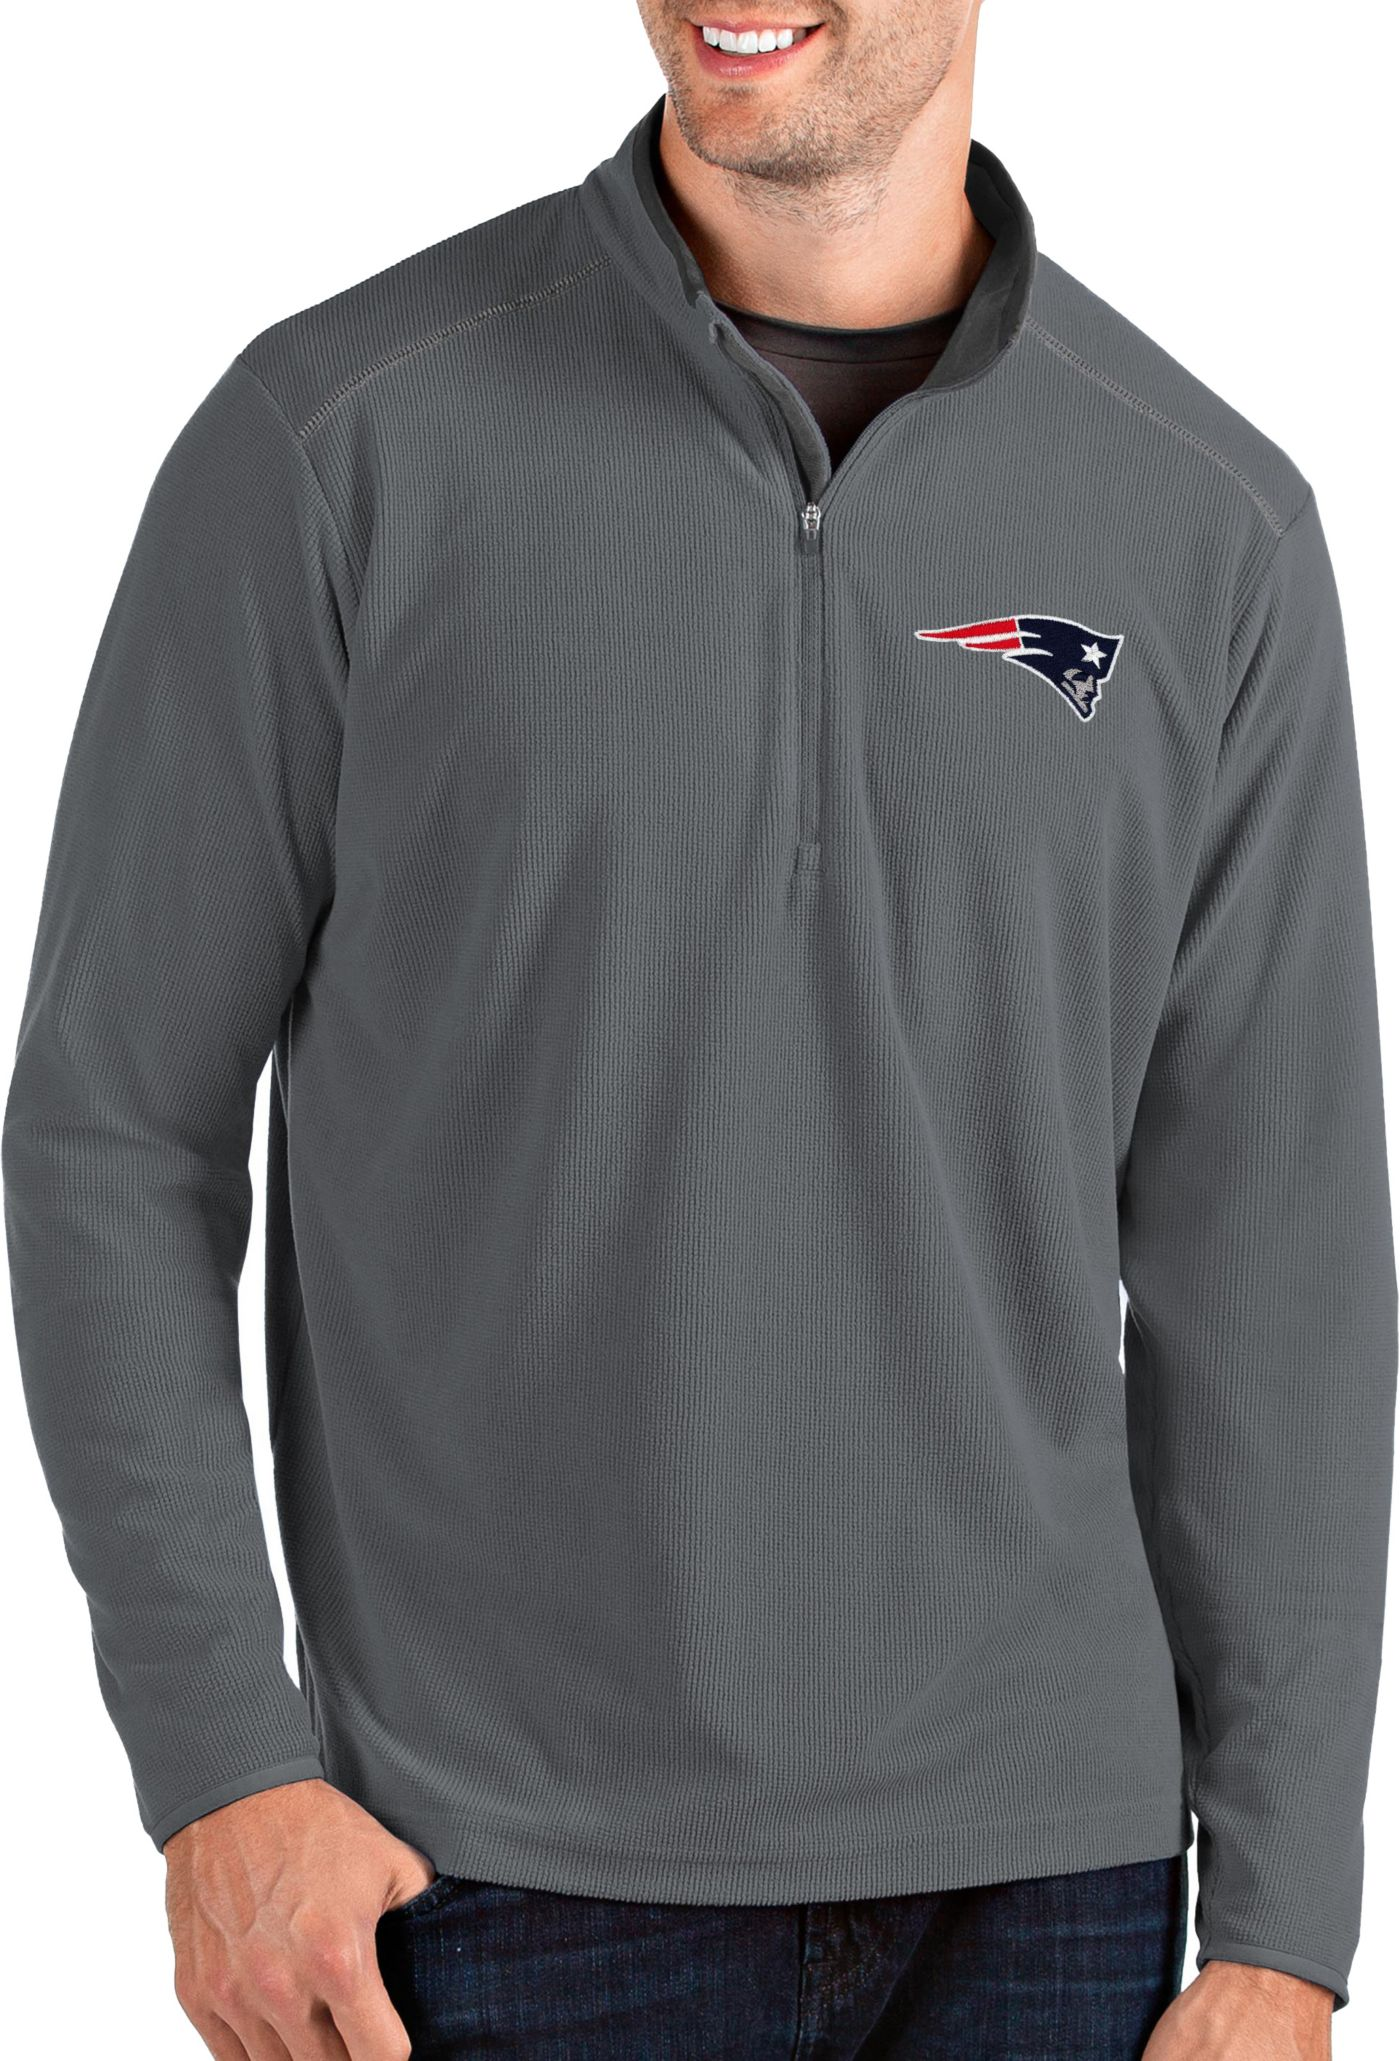 Antigua Men's New England Patriots Glacier Grey Quarter-Zip Pullover